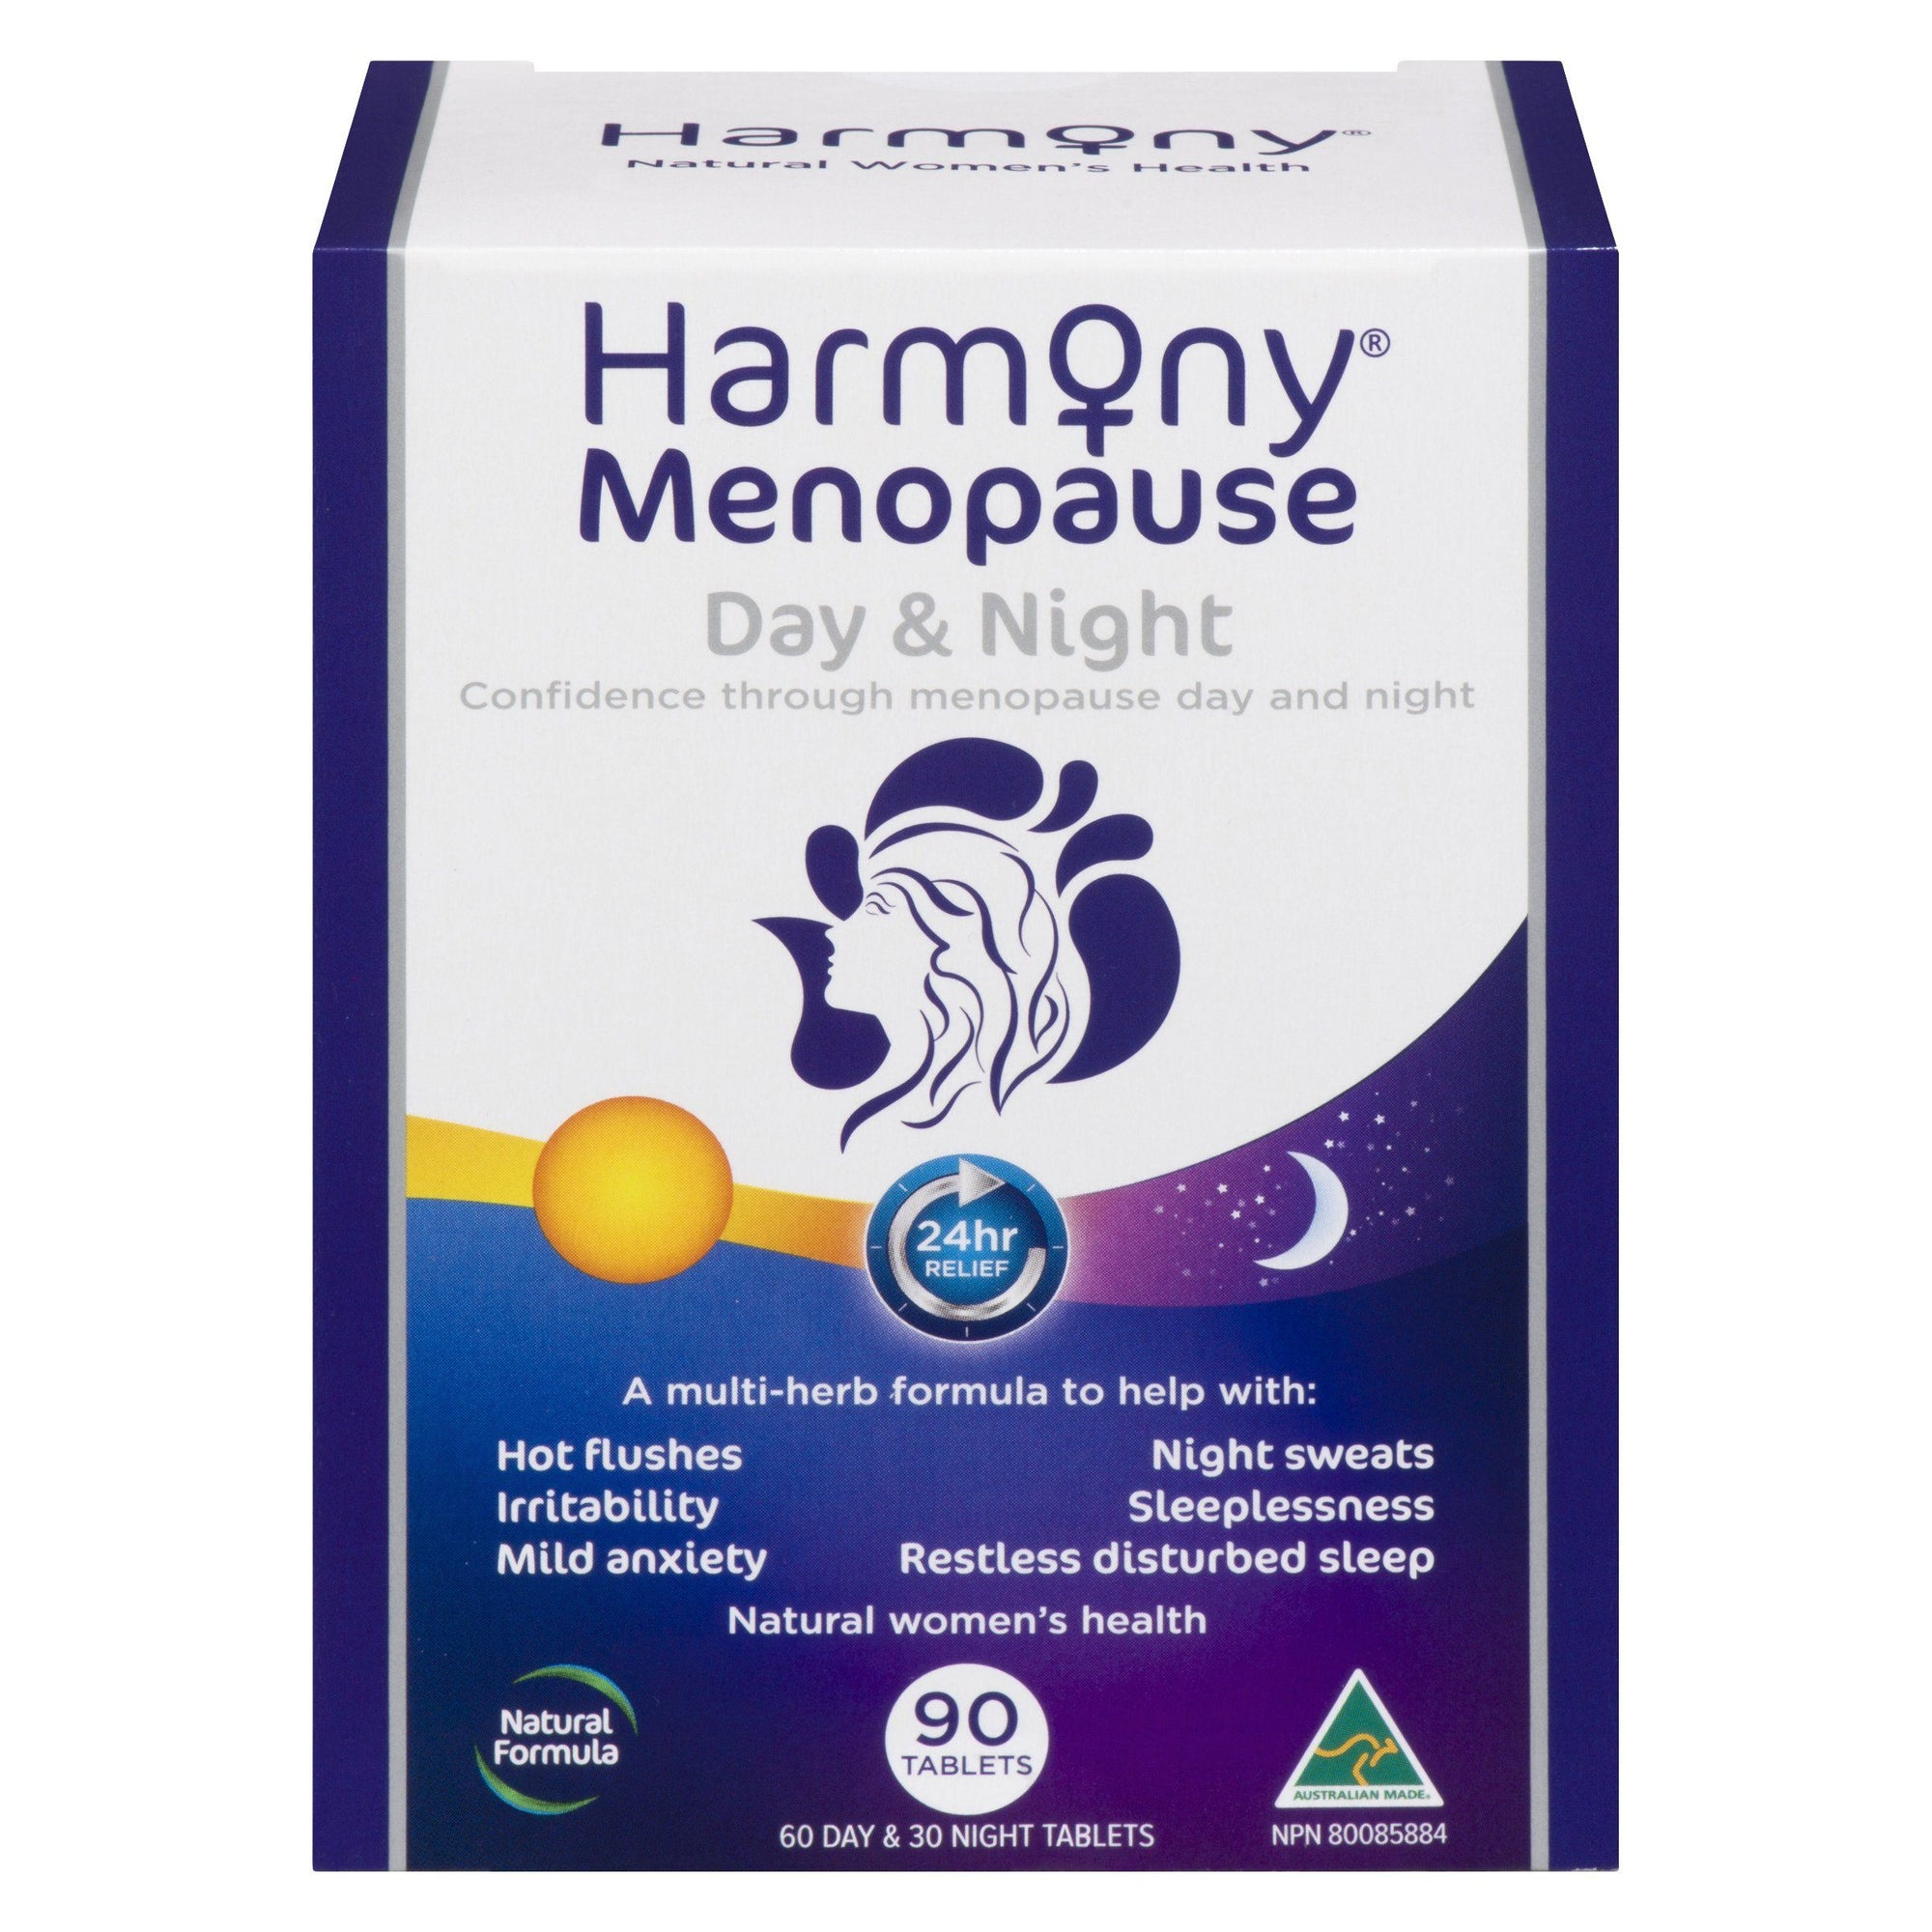 Supplements & Vitamins - Martin & Pleasance - Harmony Menopause Day & Night, 90 Caps